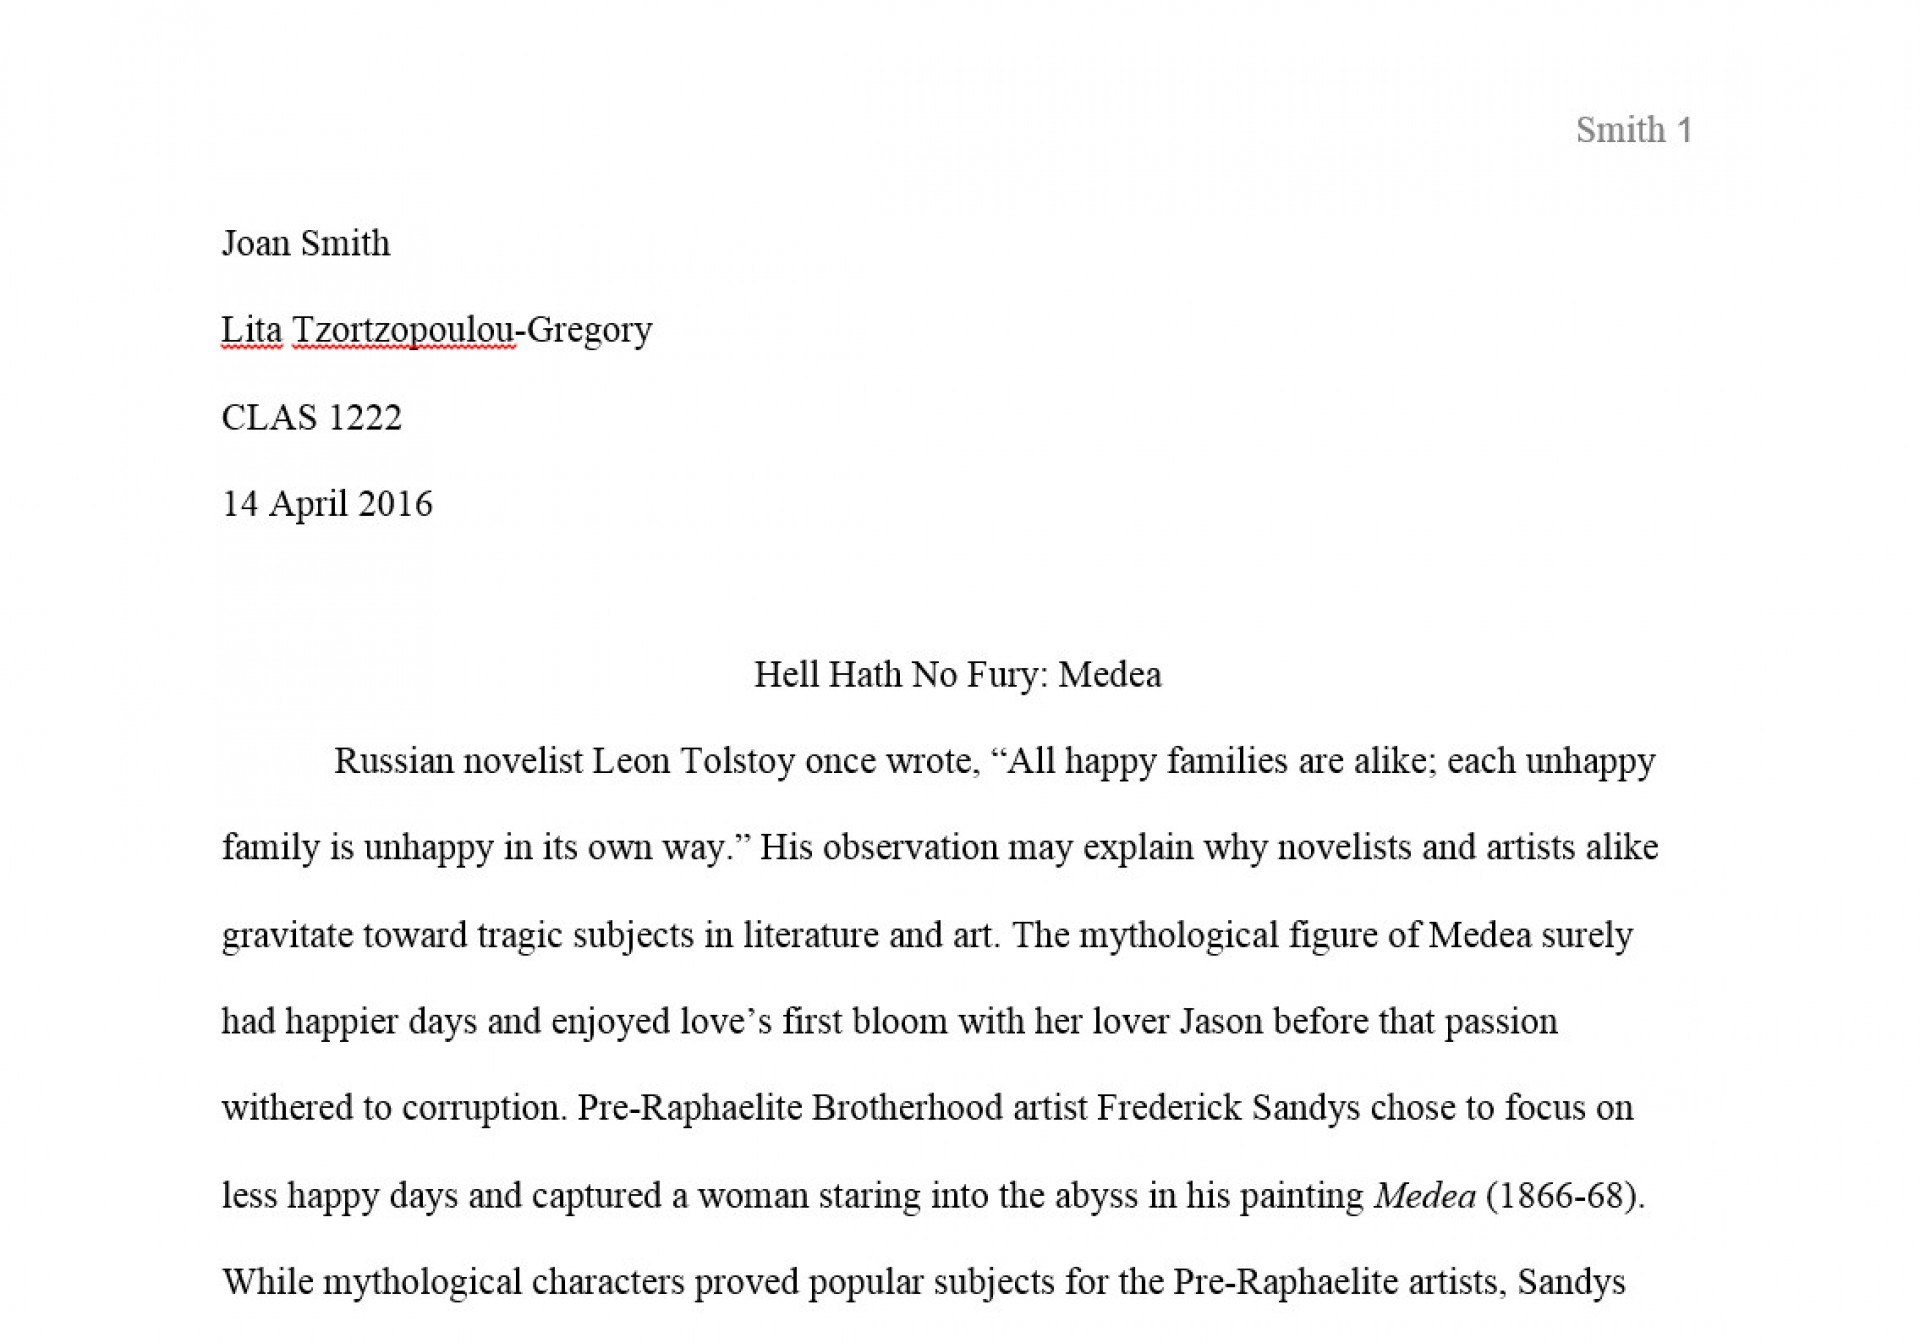 004 First Page Research Paper Mla Format Unique Style For The Of A Title 1920